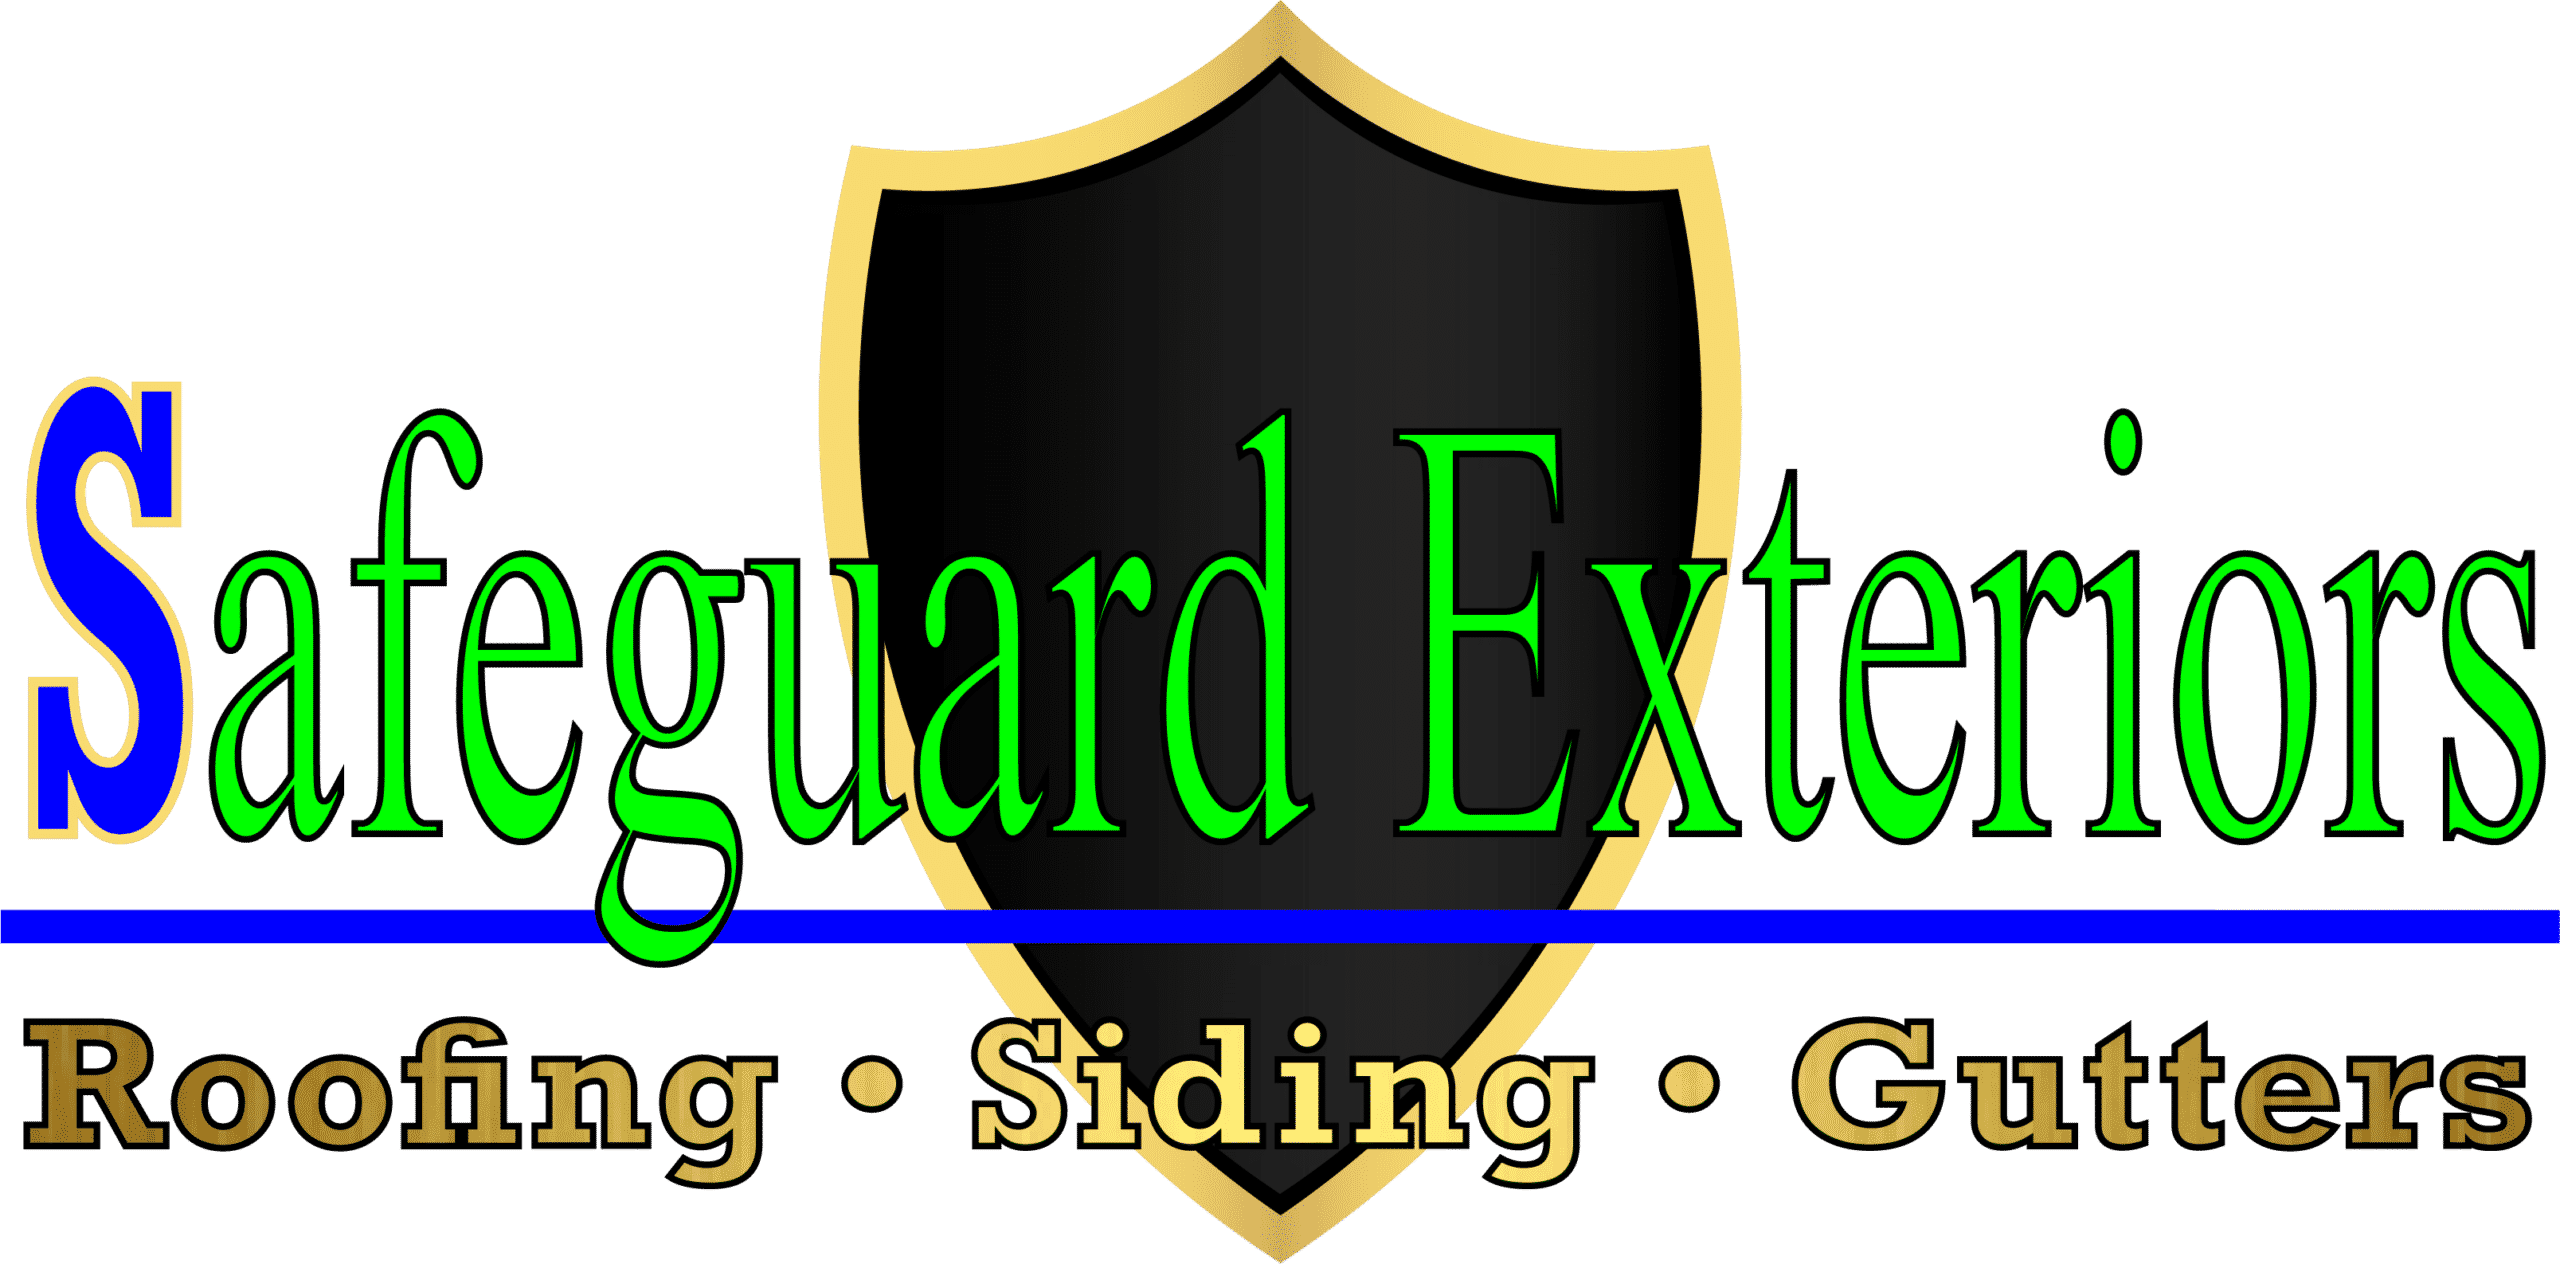 Safeguard Exteriors, LLC